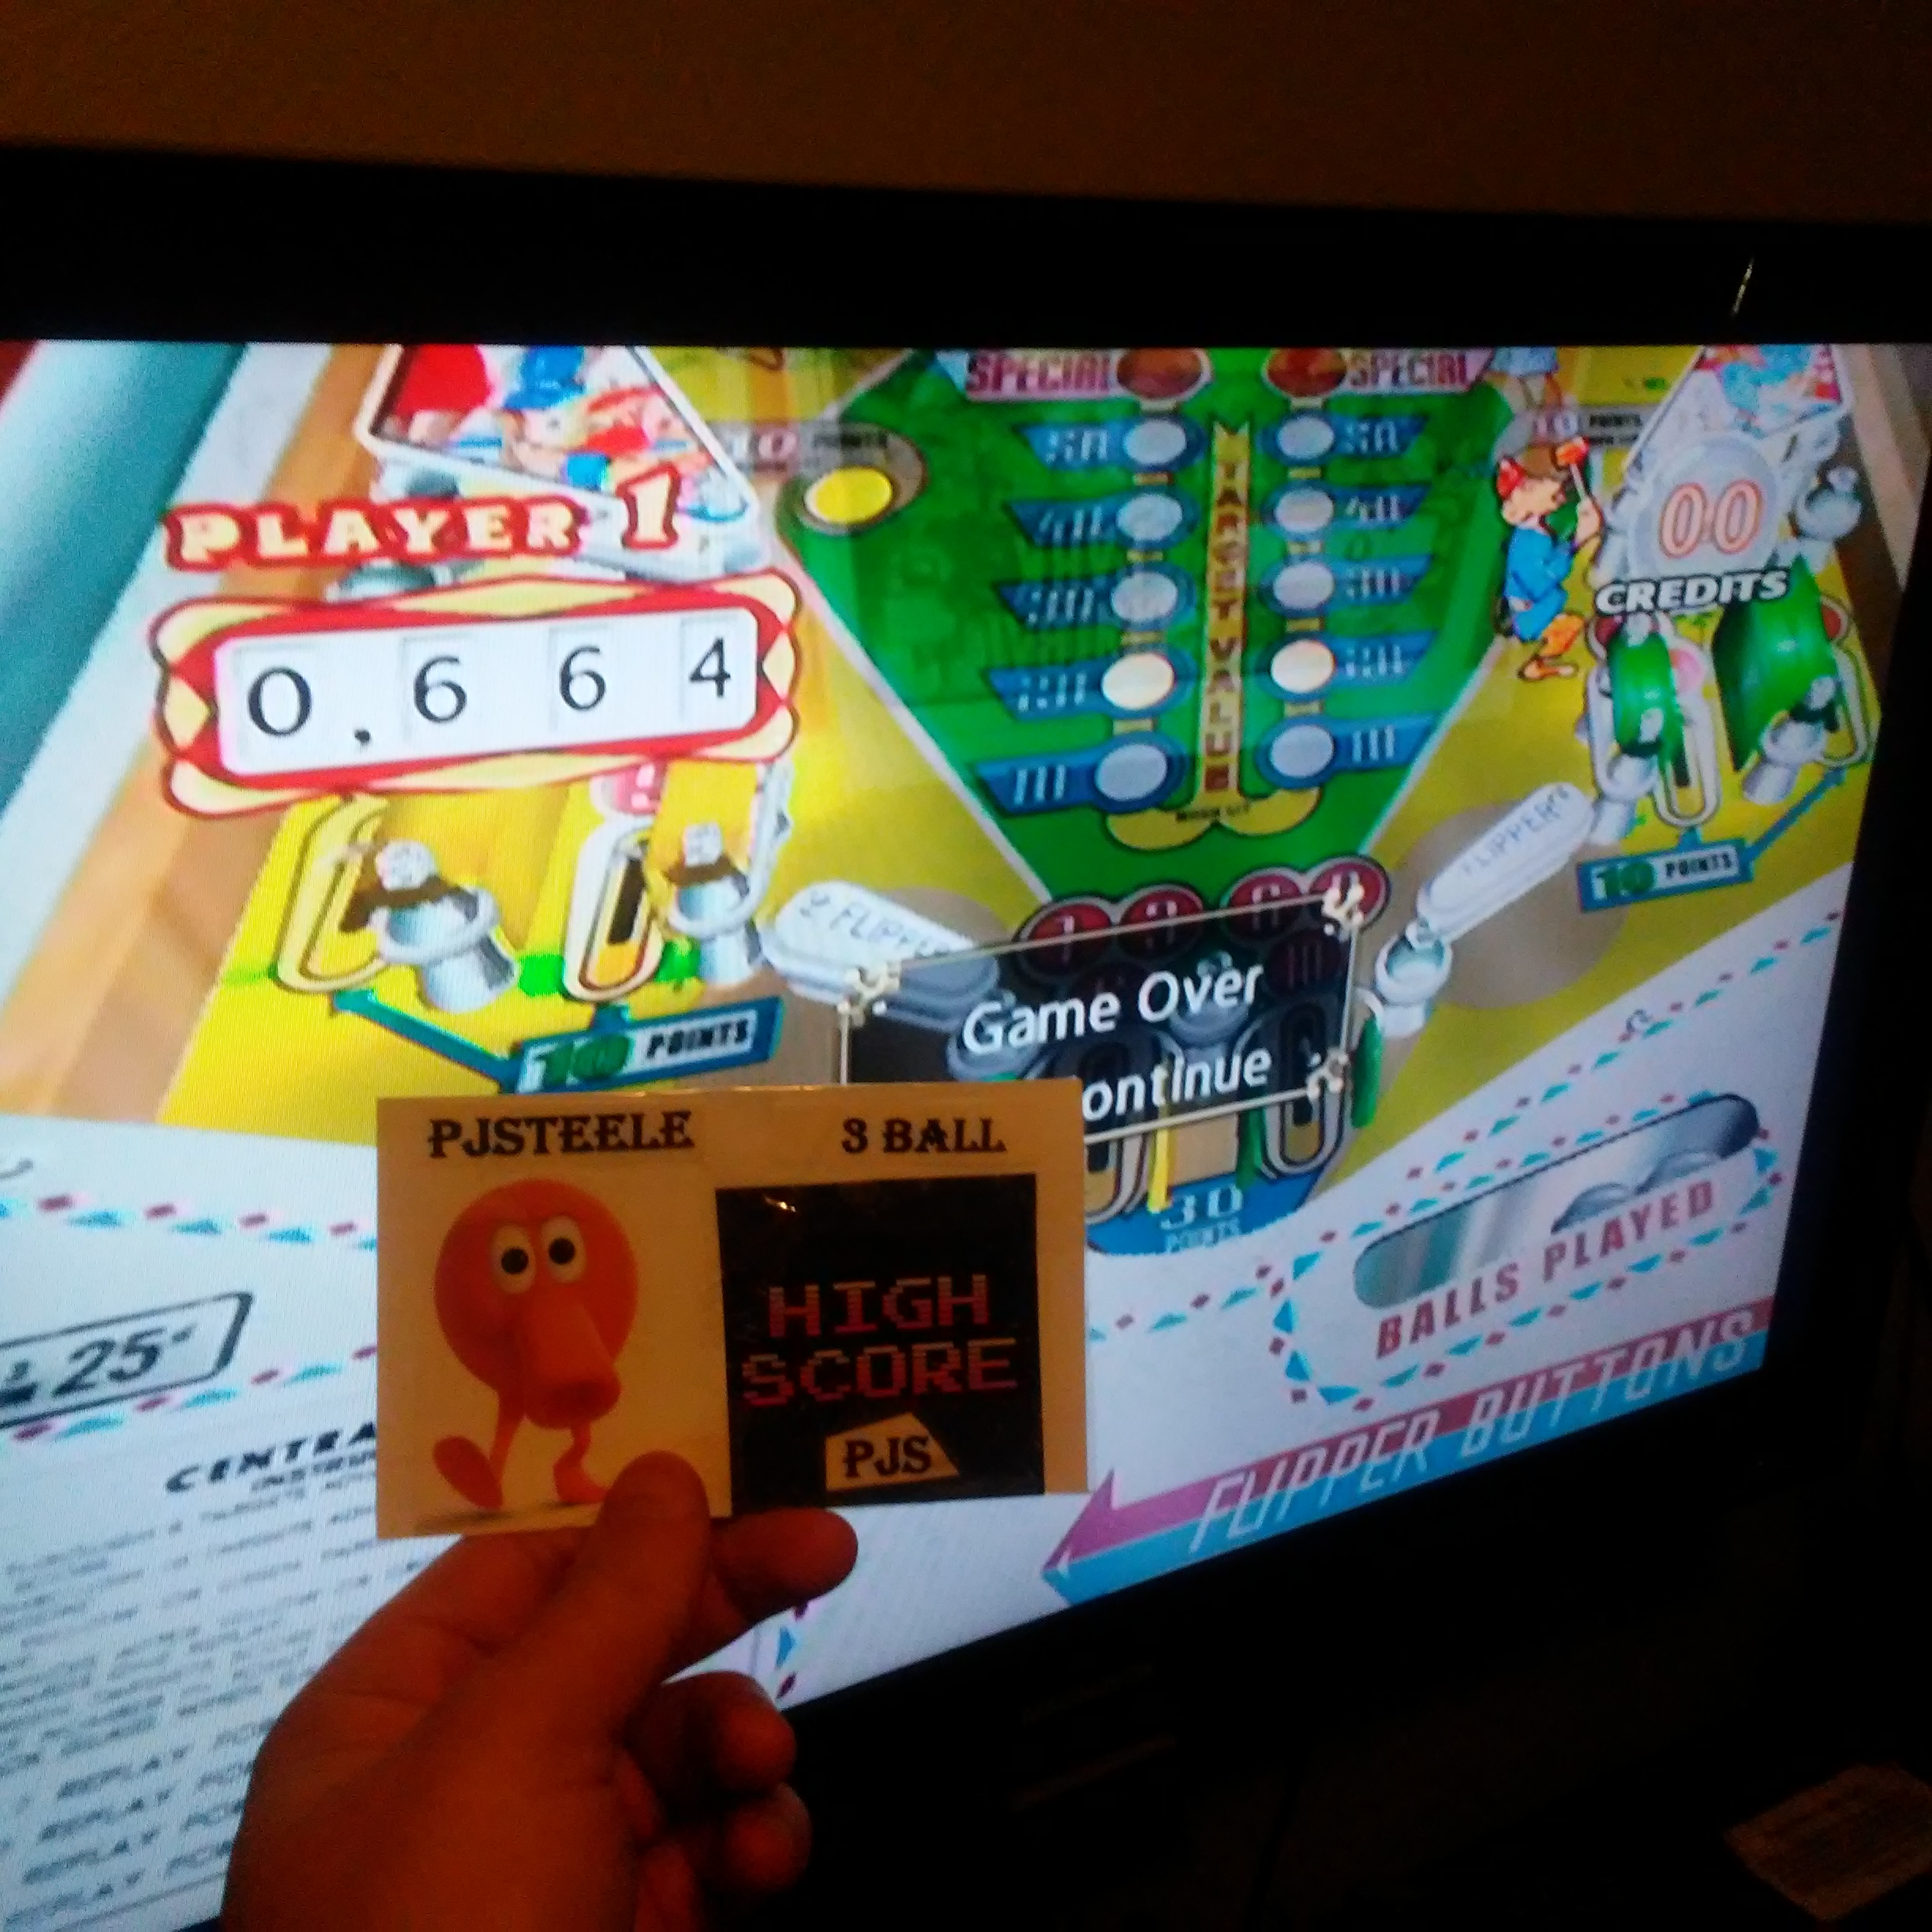 Pjsteele: Pinball Hall of Fame: The Gottlieb Collection: Central Park [3 Balls] (GameCube) 664 points on 2018-01-28 14:29:34